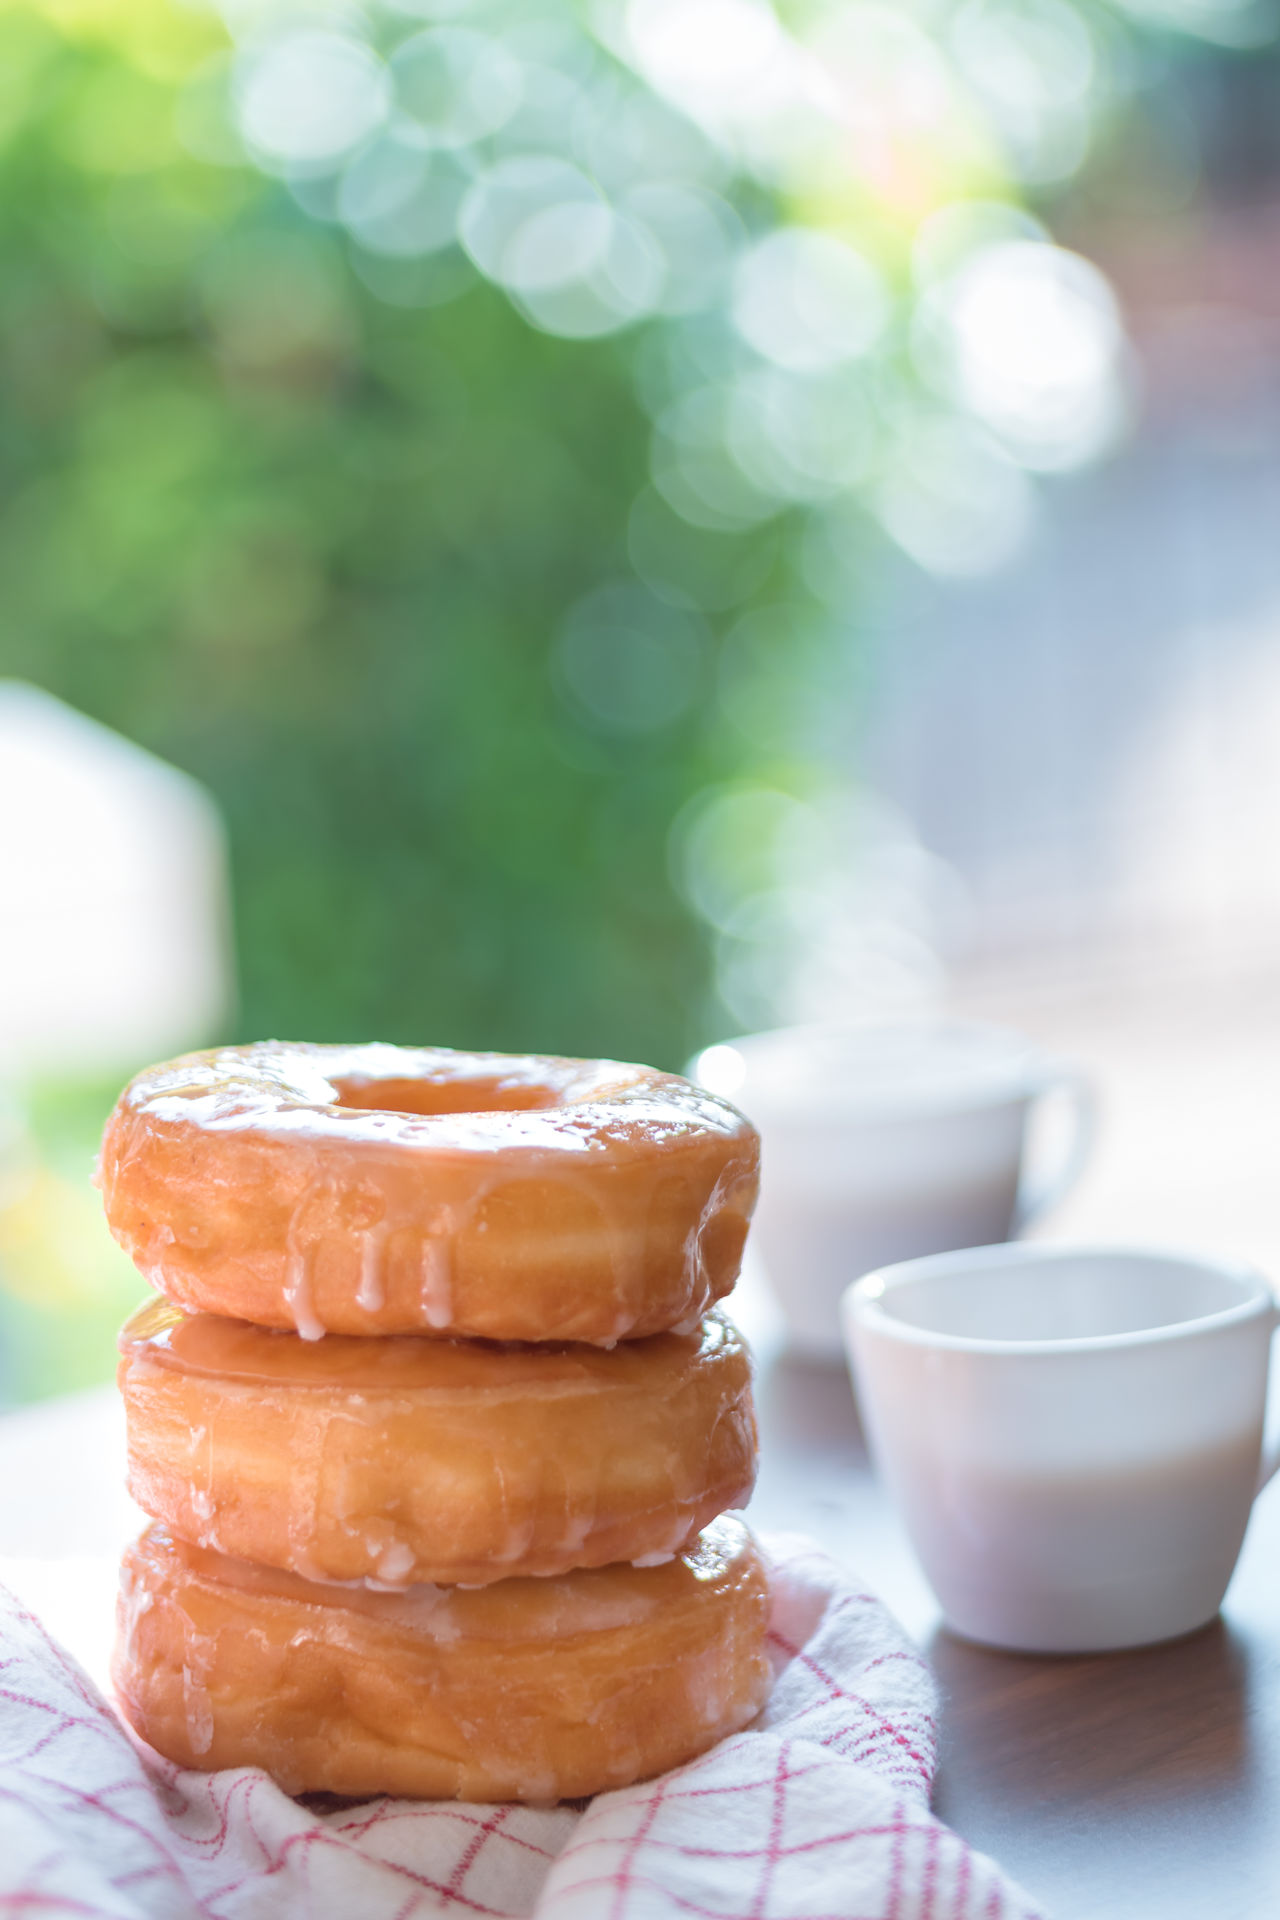 Close-up Coffee Table Coffee Time Day Dessert Doughnuts Focus On Foreground Food Food And Drink Freshness Indoors  Morning No People Ready-to-eat Refreshment Soft Doughnut Stack Sweet Food Table Temptation